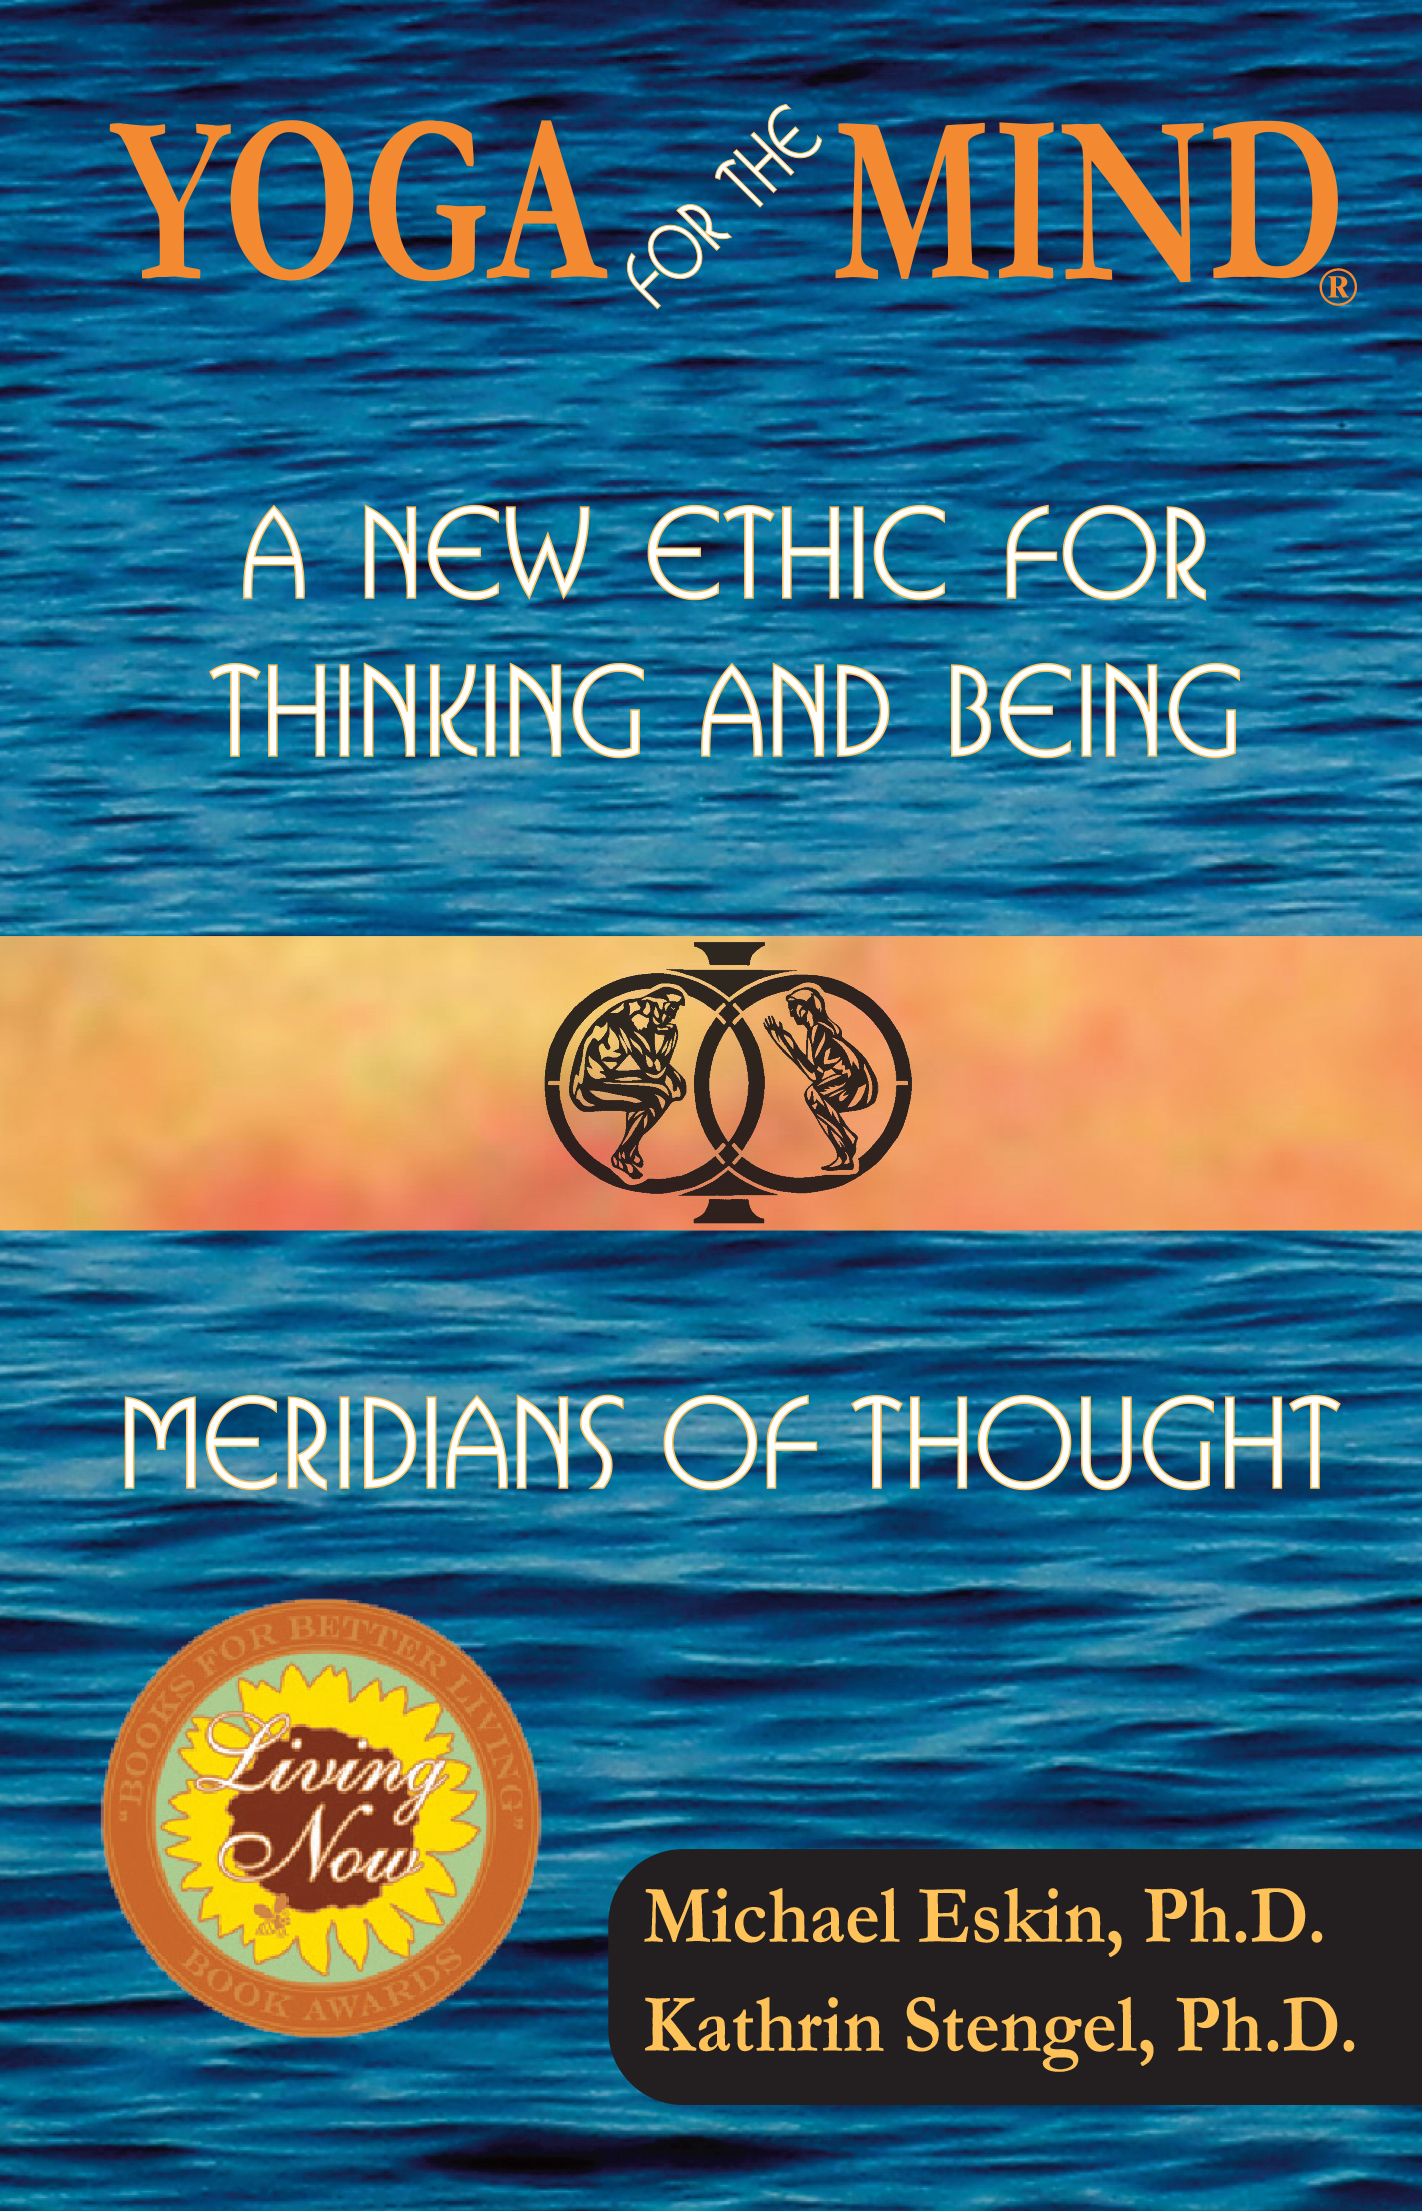 Yoga for the Mind: A New Ethic for Thinking and Being & Meridians of Thought